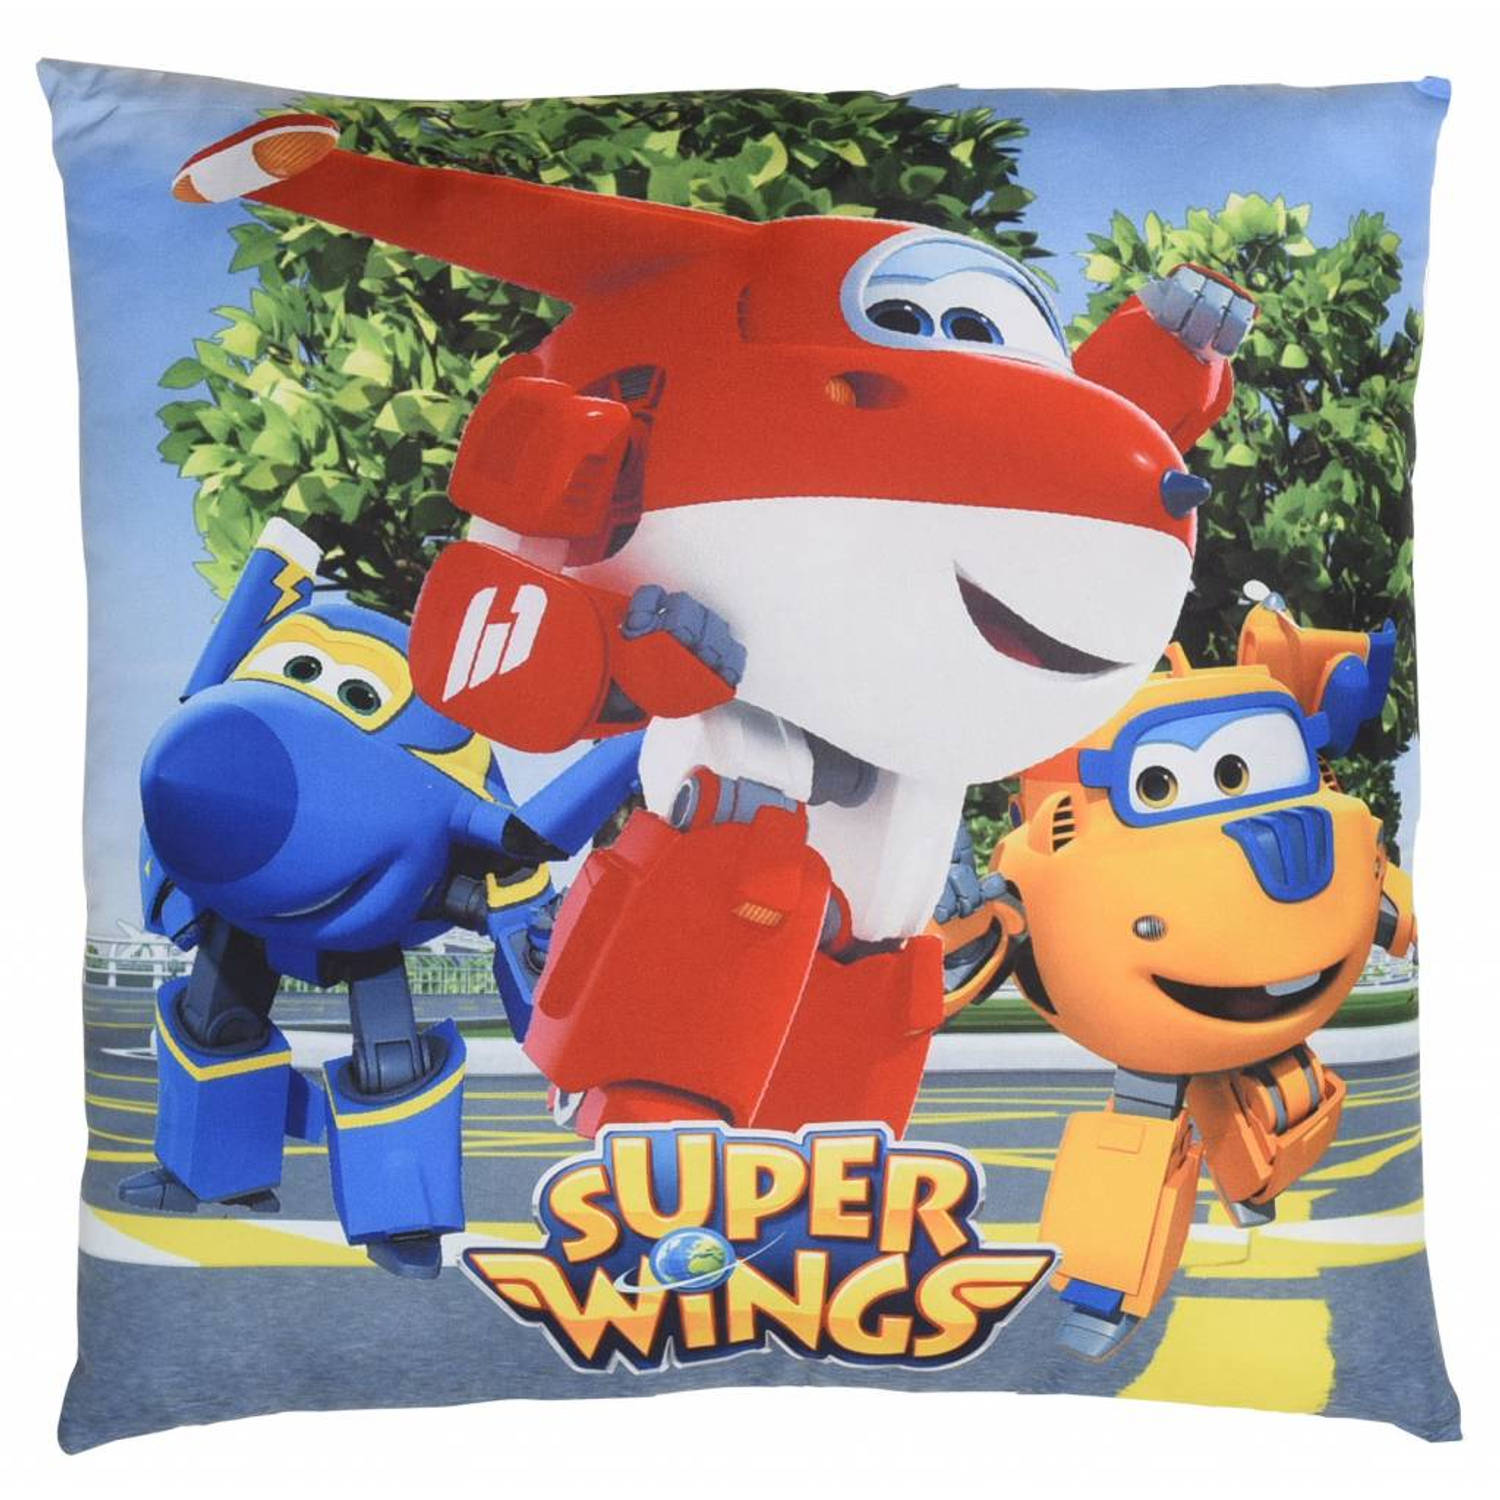 Super wings 3 hero's - sierkussen - 40 x 40 cm - multi